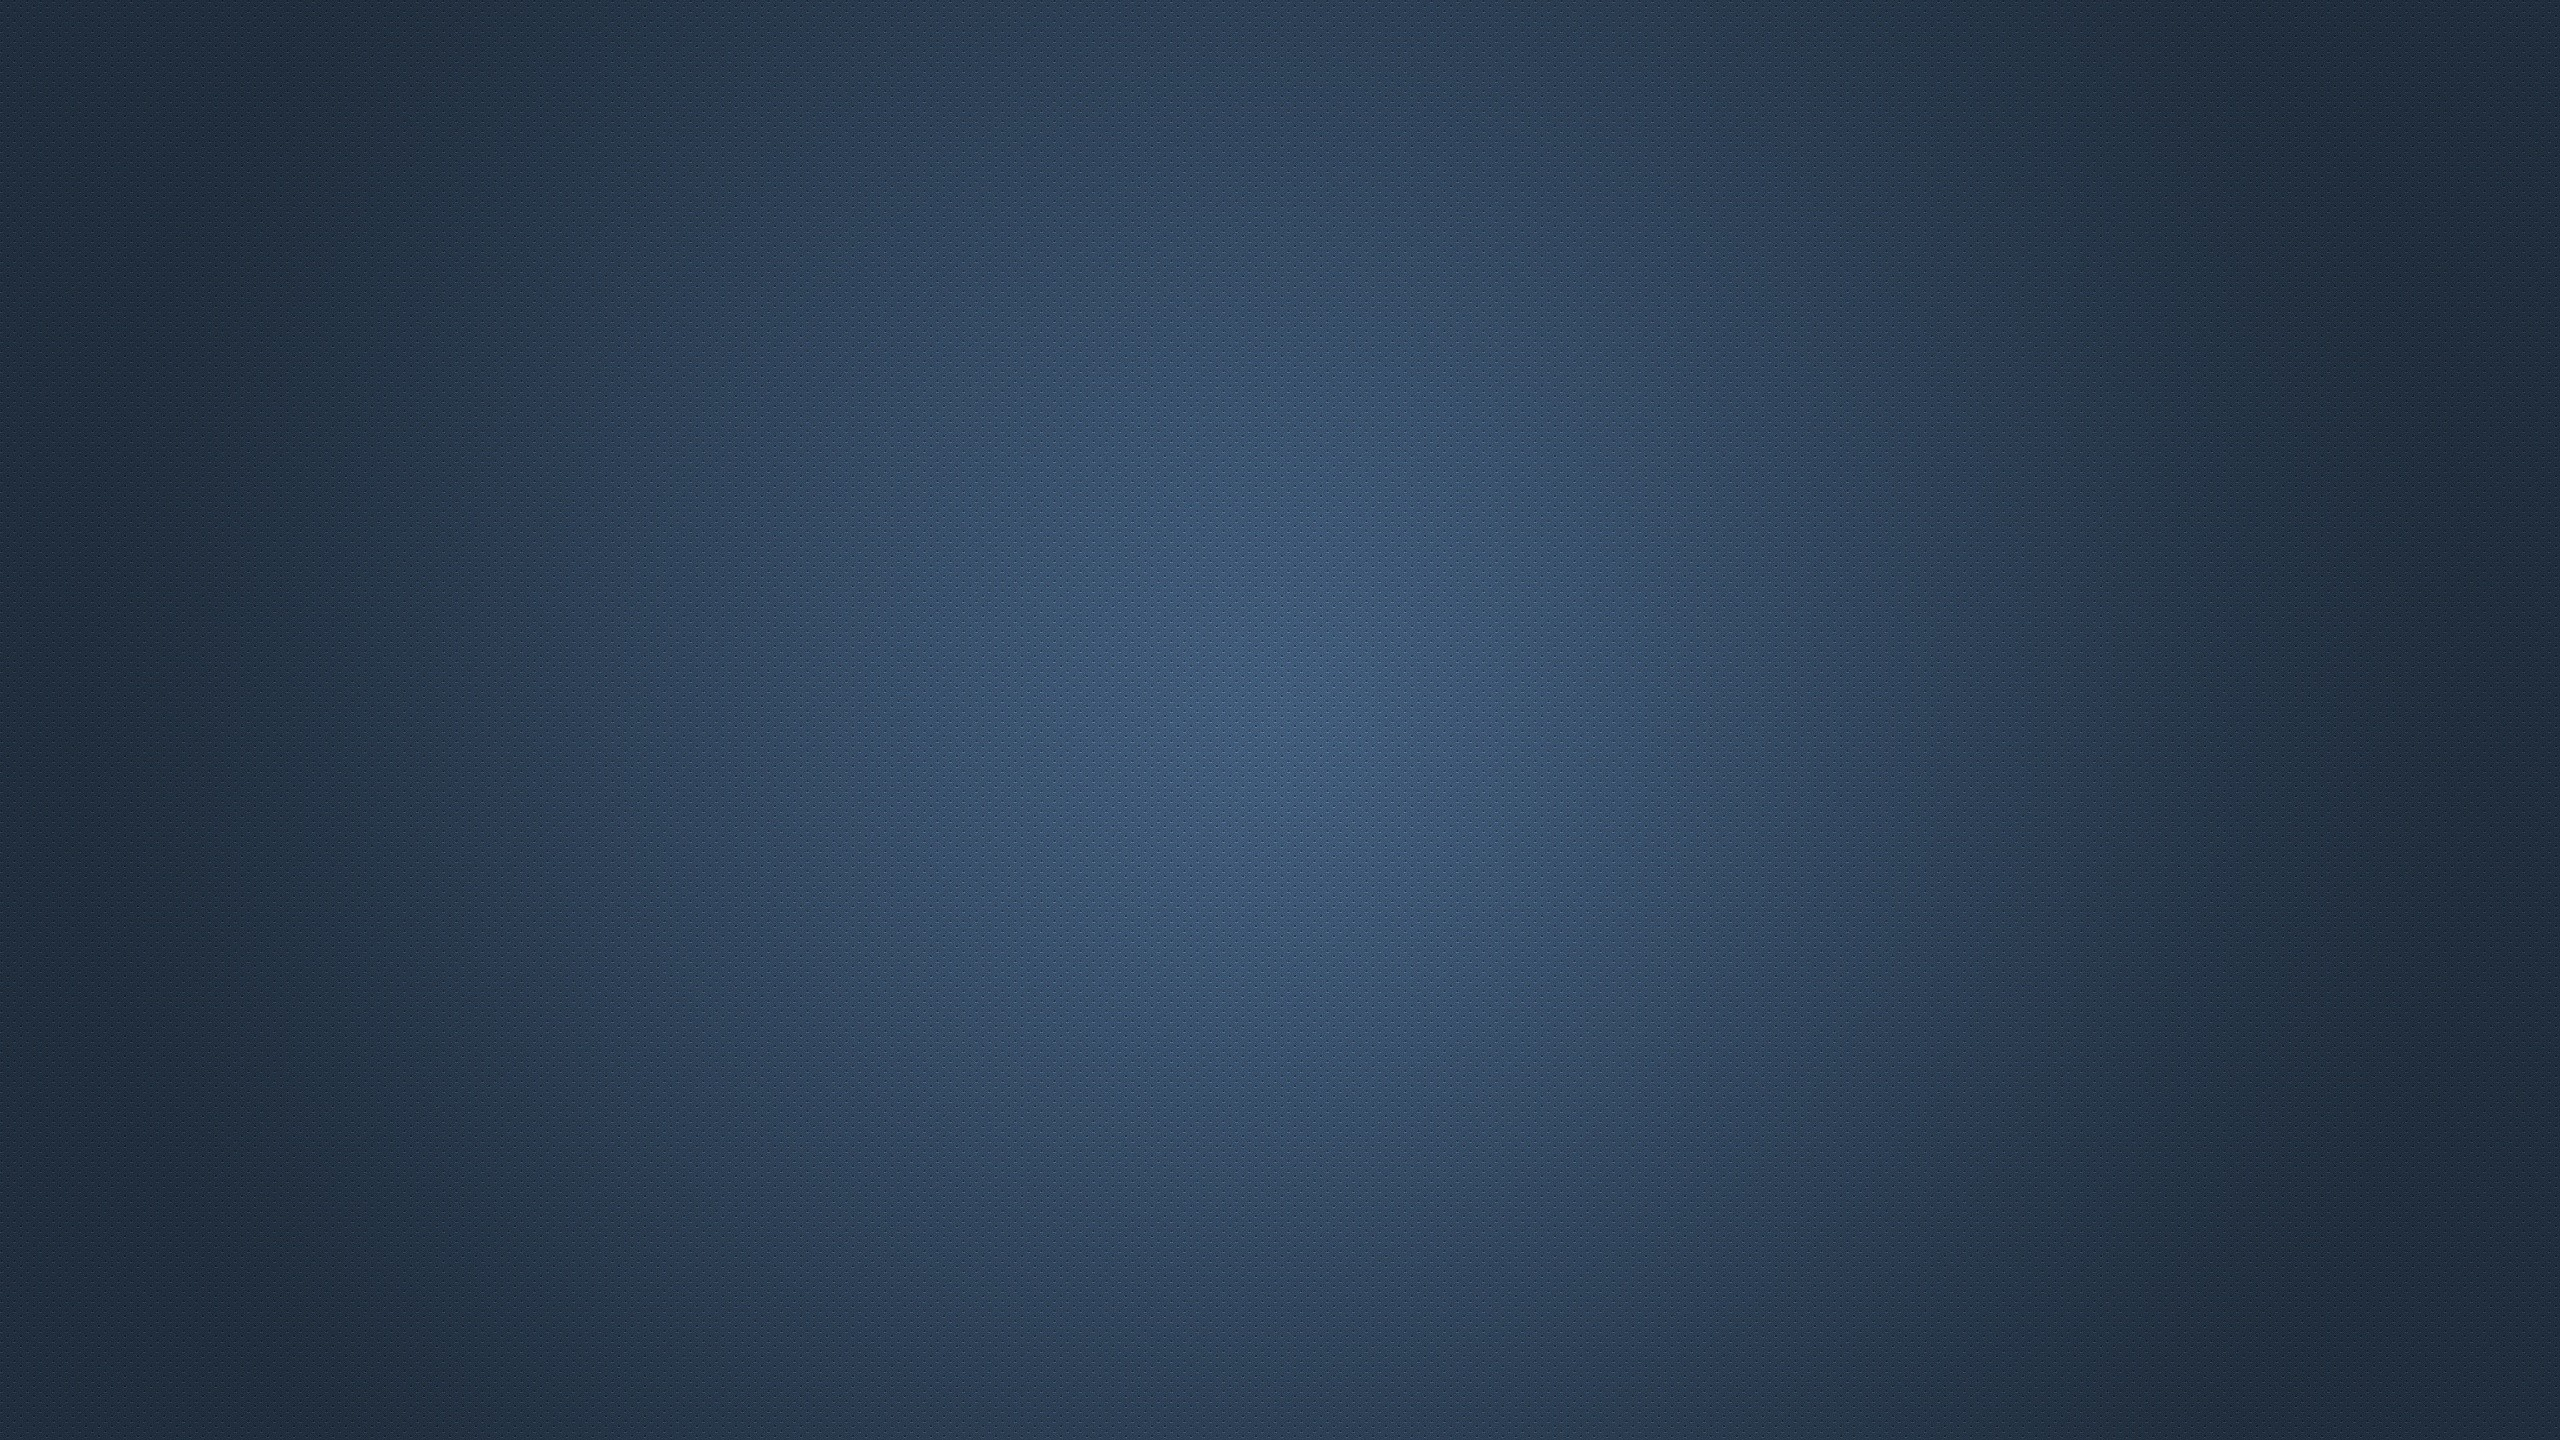 Dark Blue Pattern. How to set wallpaper on your desktop? Click  the download link from above and set the wallpaper on the desktop from your  OS.